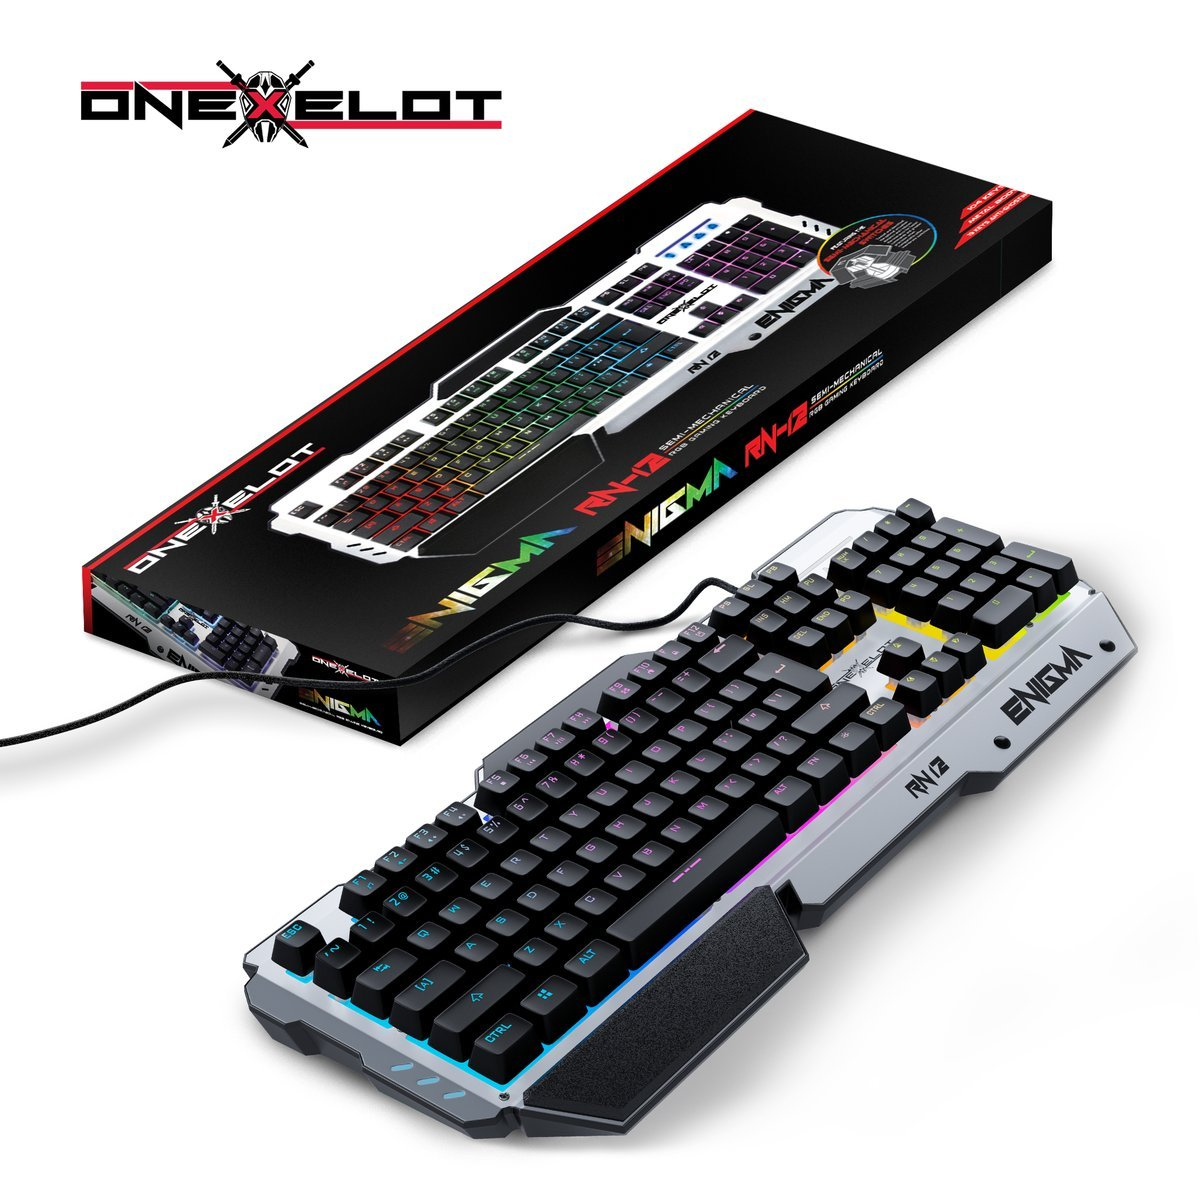 ONEXELOT Aluminum gaming keyboard, USB wired RGB backlit Revolutionary semi mechanical keyboard mod ENIGMA by ONEXELOT (Image #6)